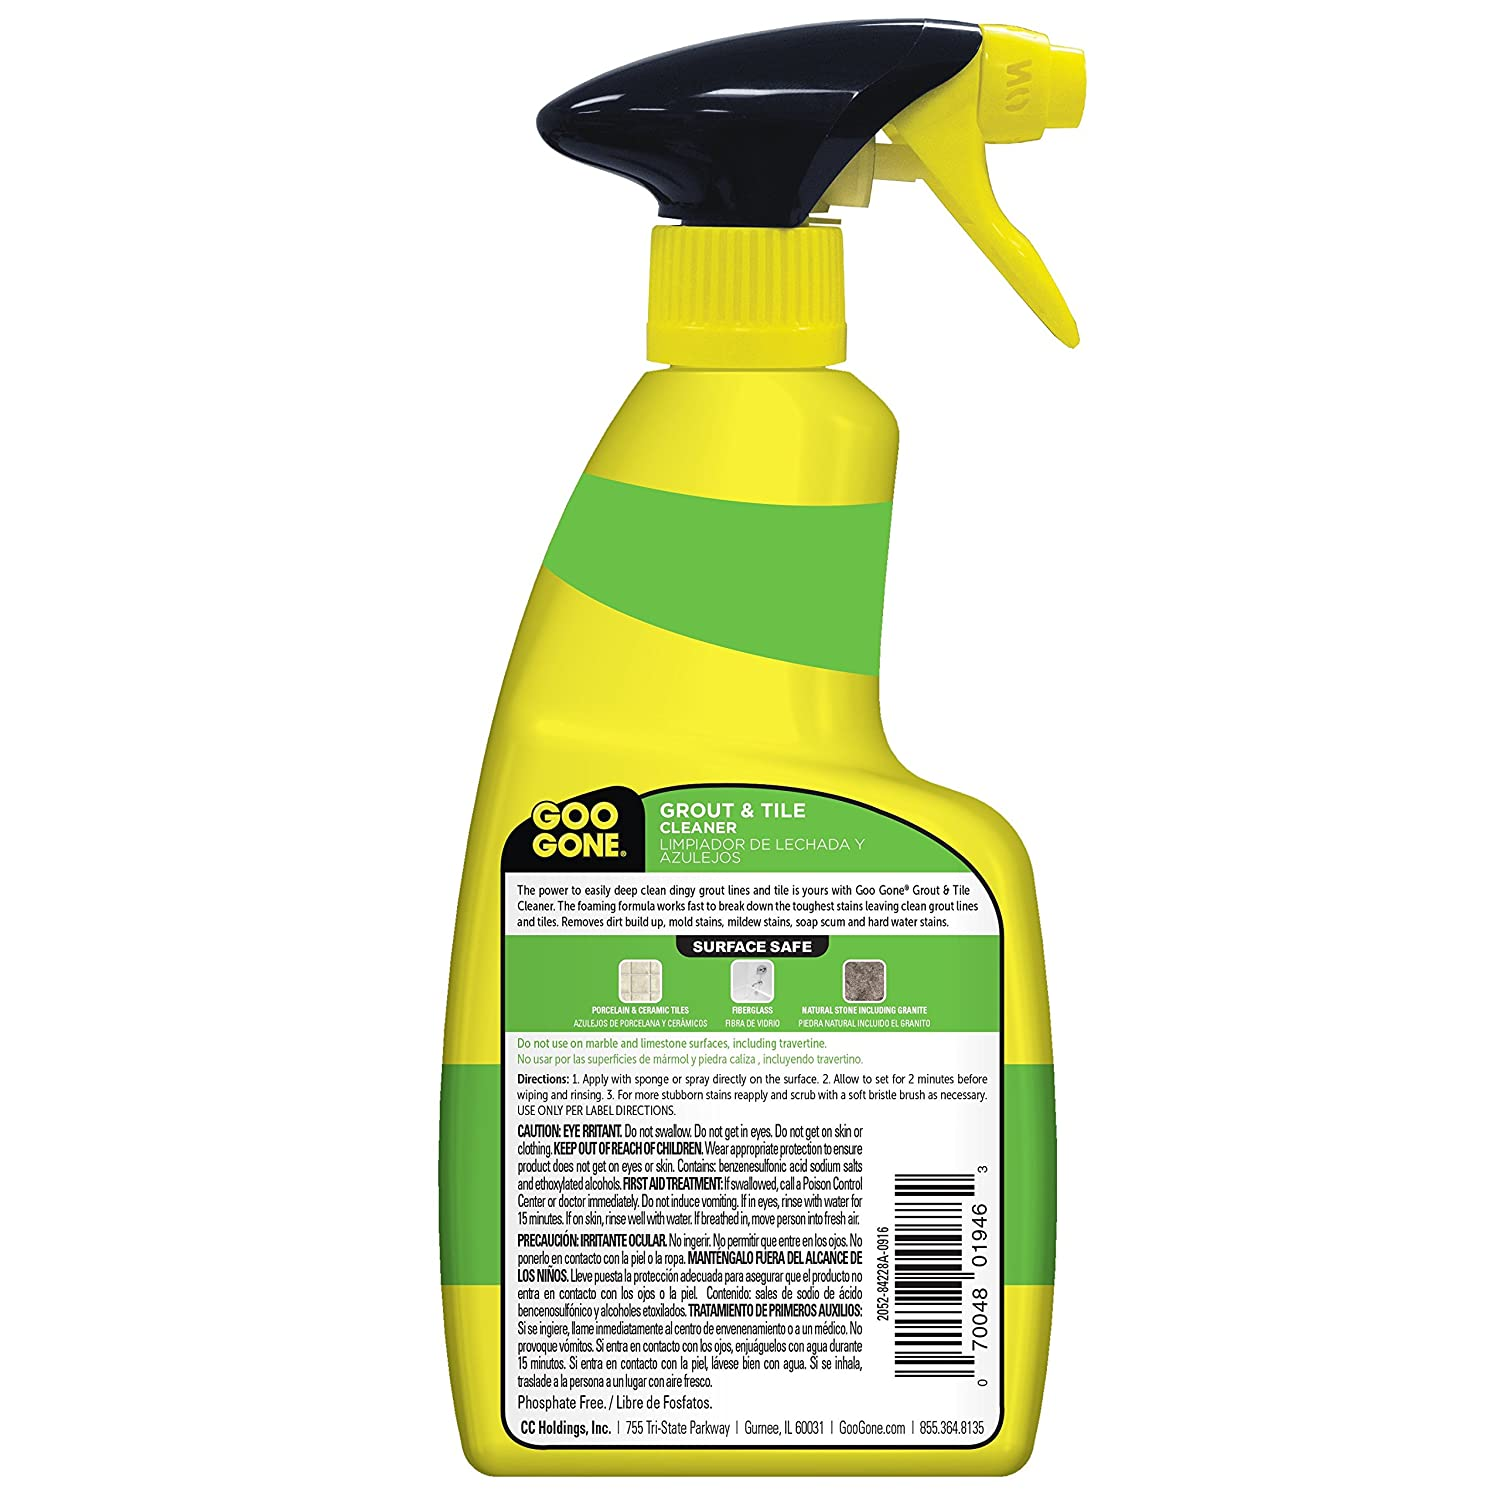 Amazon goo gone grout tile cleaner stain remover 14 fl amazon goo gone grout tile cleaner stain remover 14 fl oz home improvement dailygadgetfo Gallery